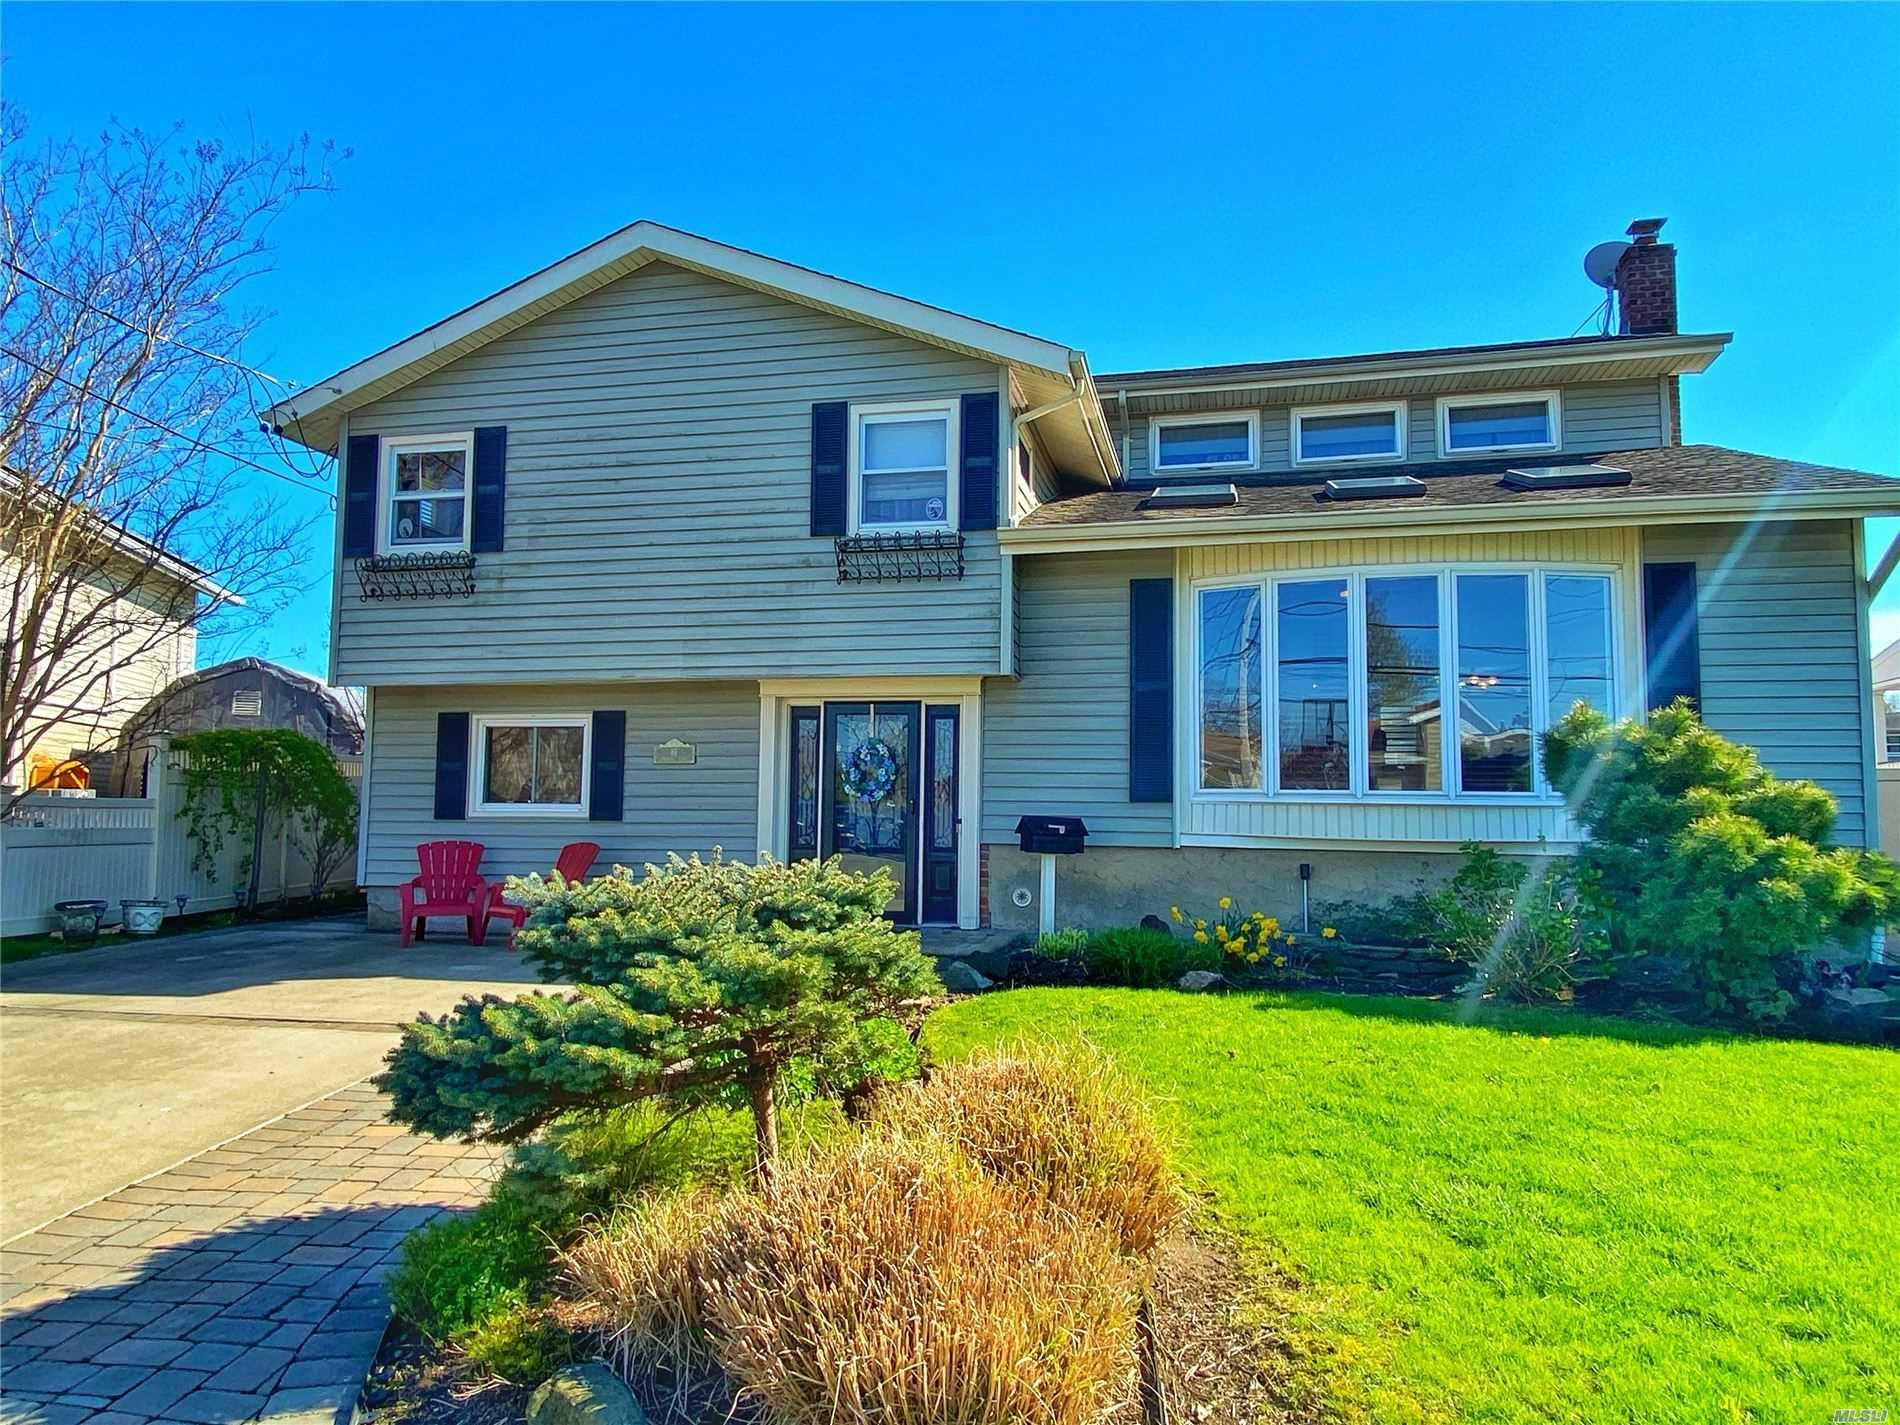 61 Cambridge Ct, East Rockaway, NY 11518 - MLS#: 3212920